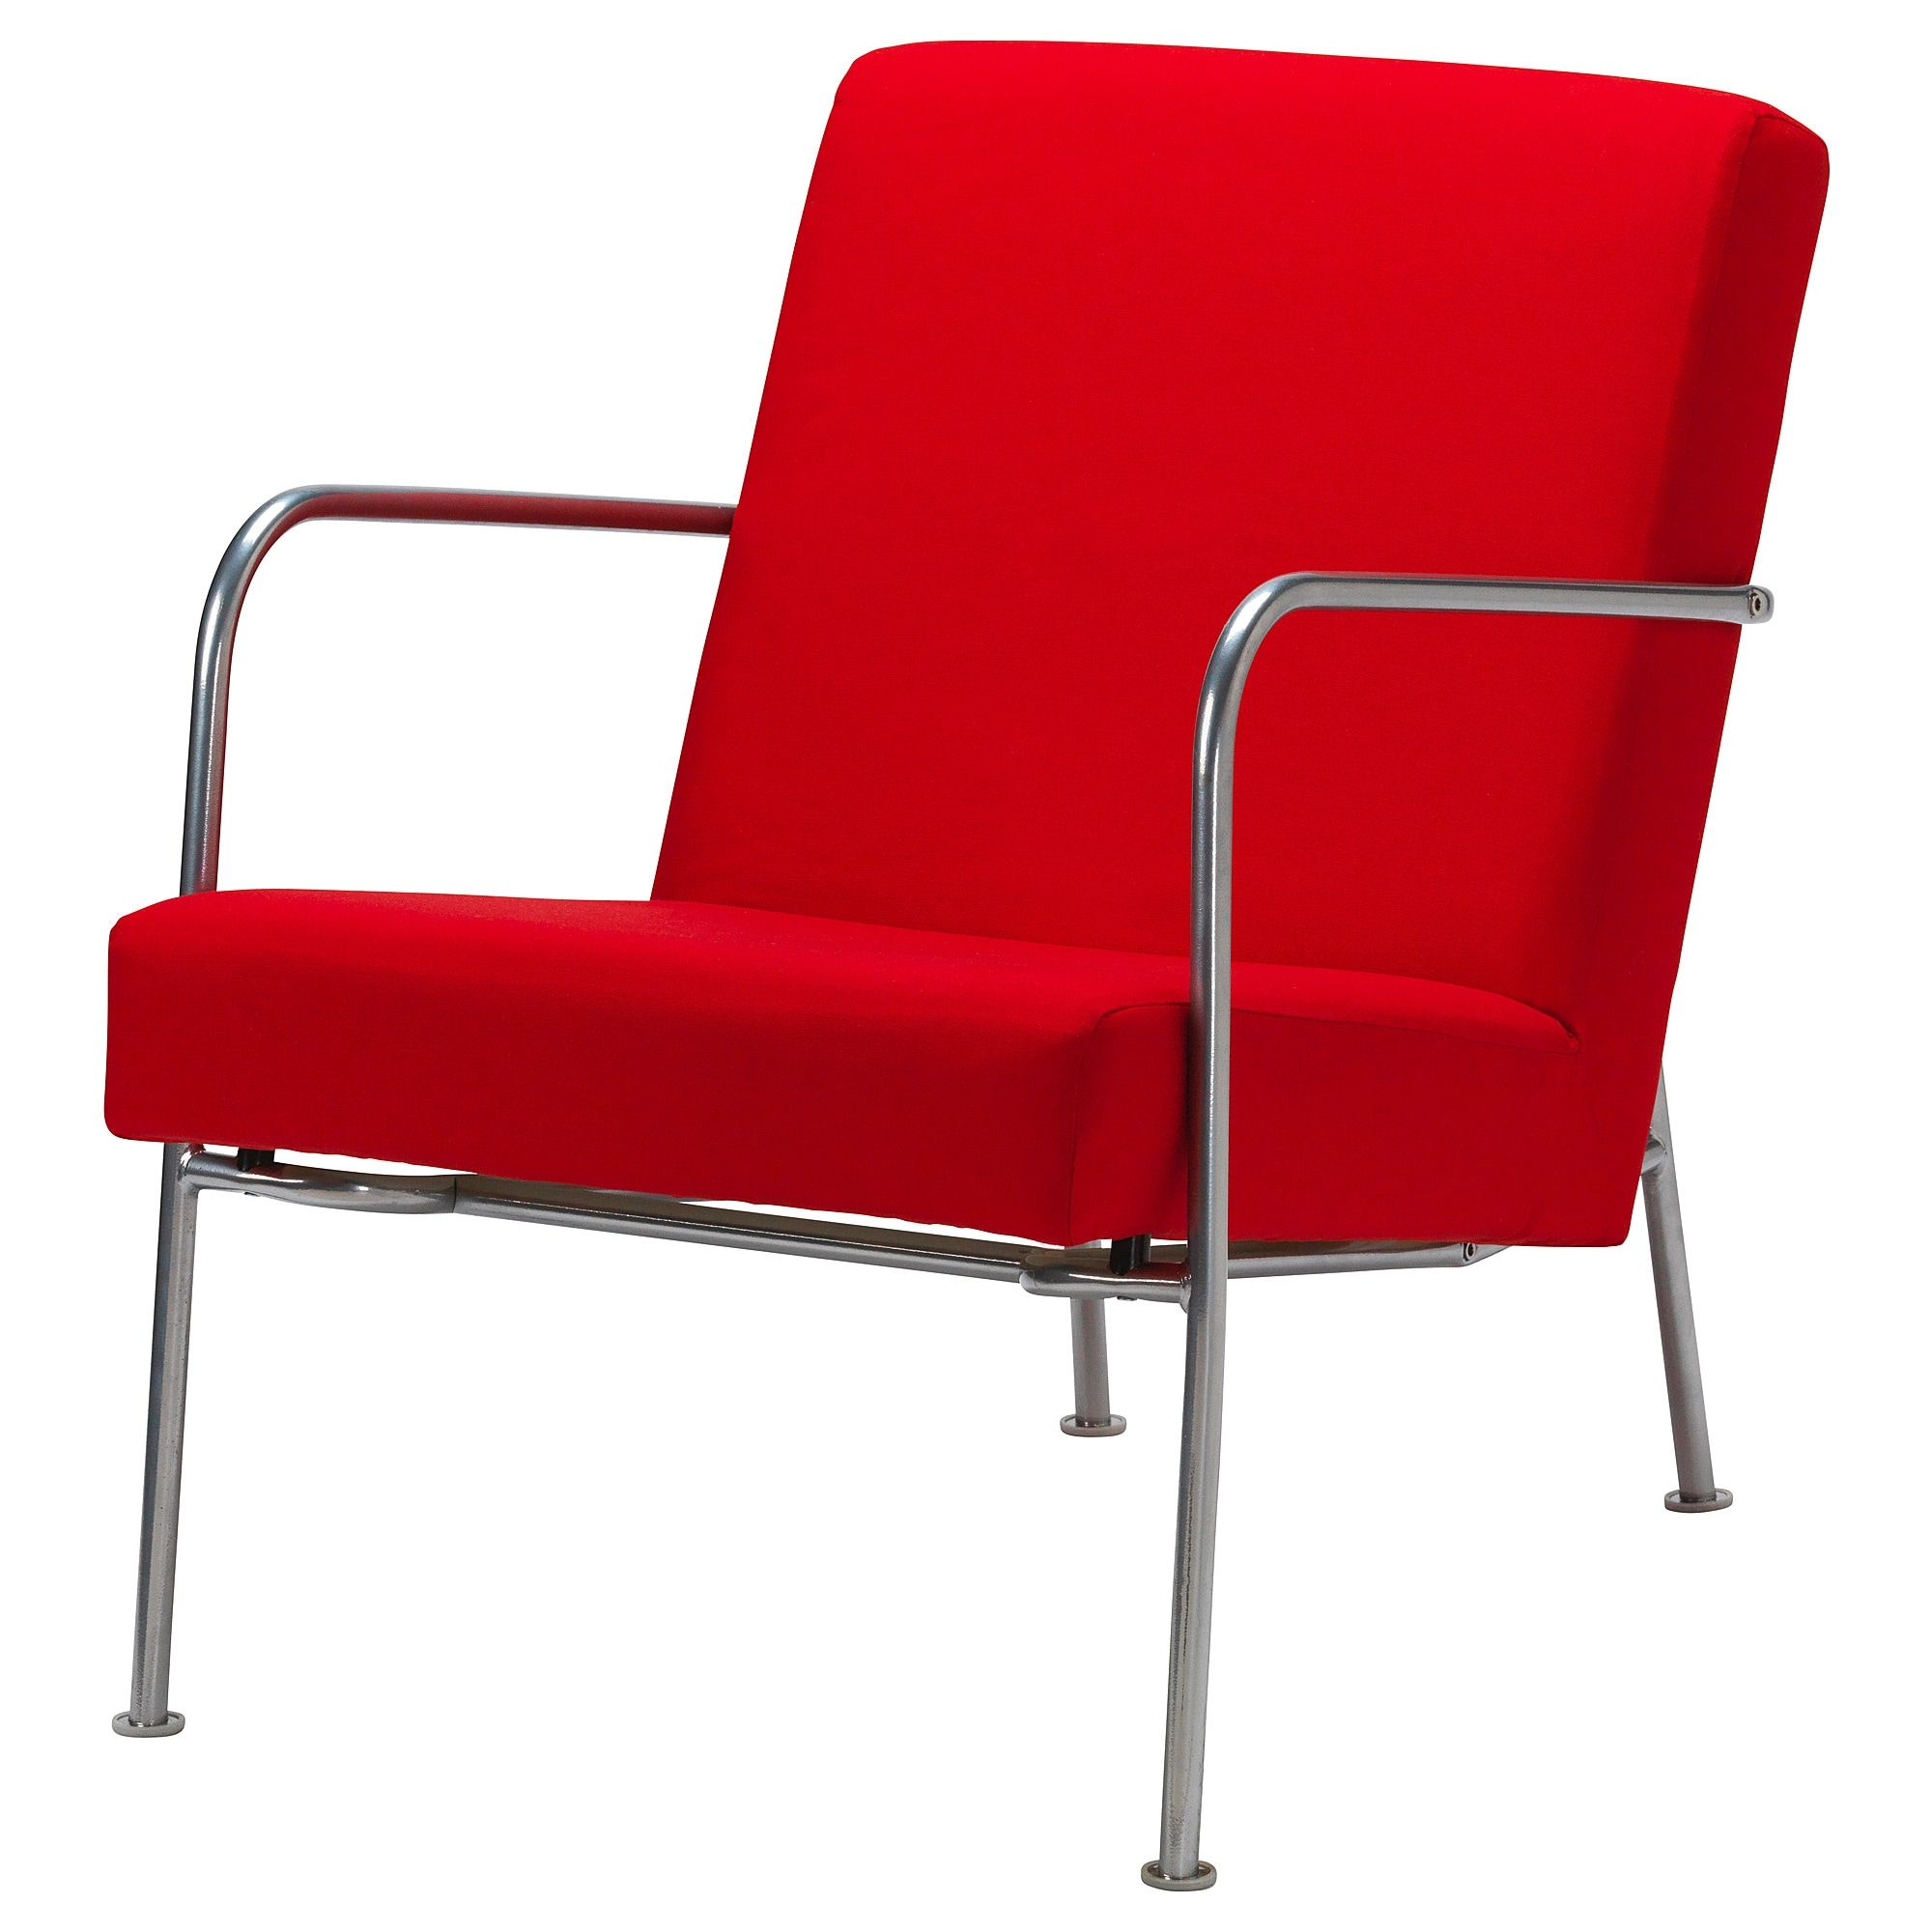 Bistrotafel Ikea Ikea Ps 1999 Armchair Orrsta Red In 2019 Products Ikea